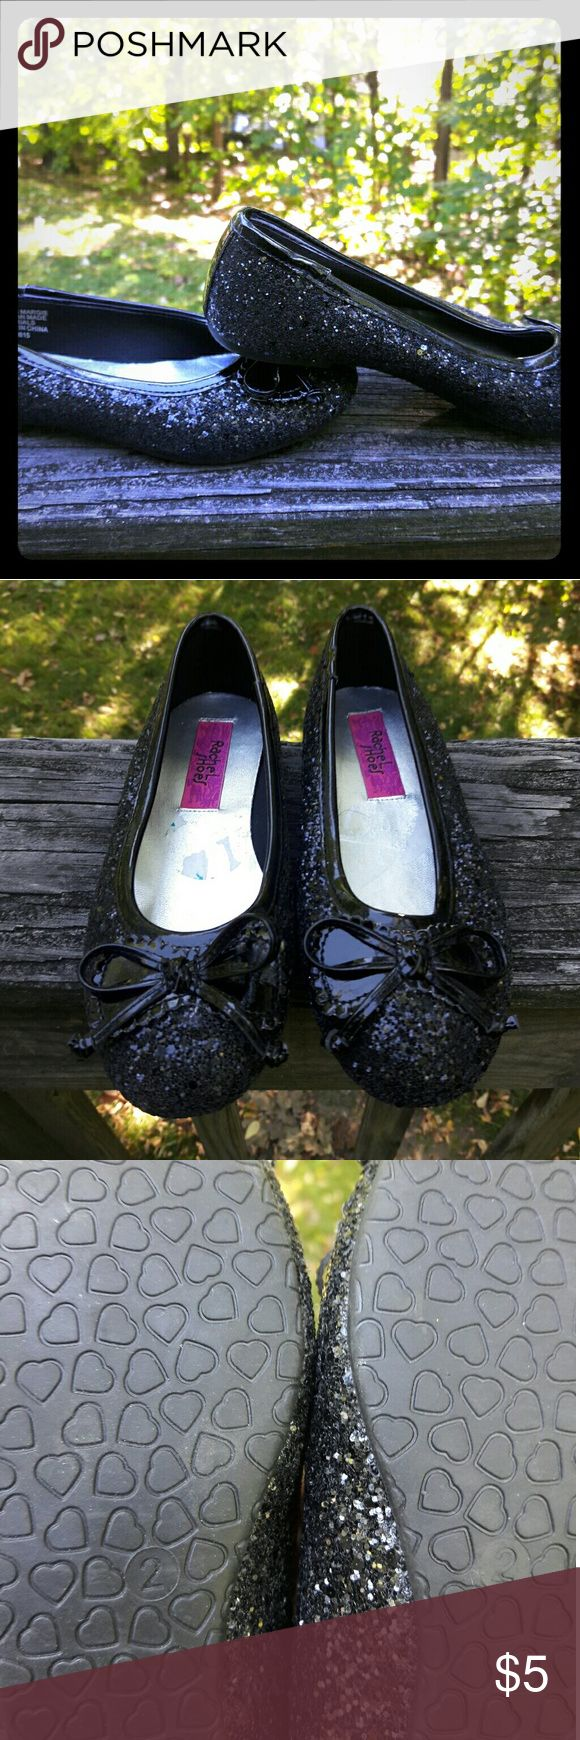 👸Black Sparkly Little Girls Flats 👗 Super cute sparkly flats for a special occasion or just to snazzy up a simple outfit!!! Shoes Dress Shoes